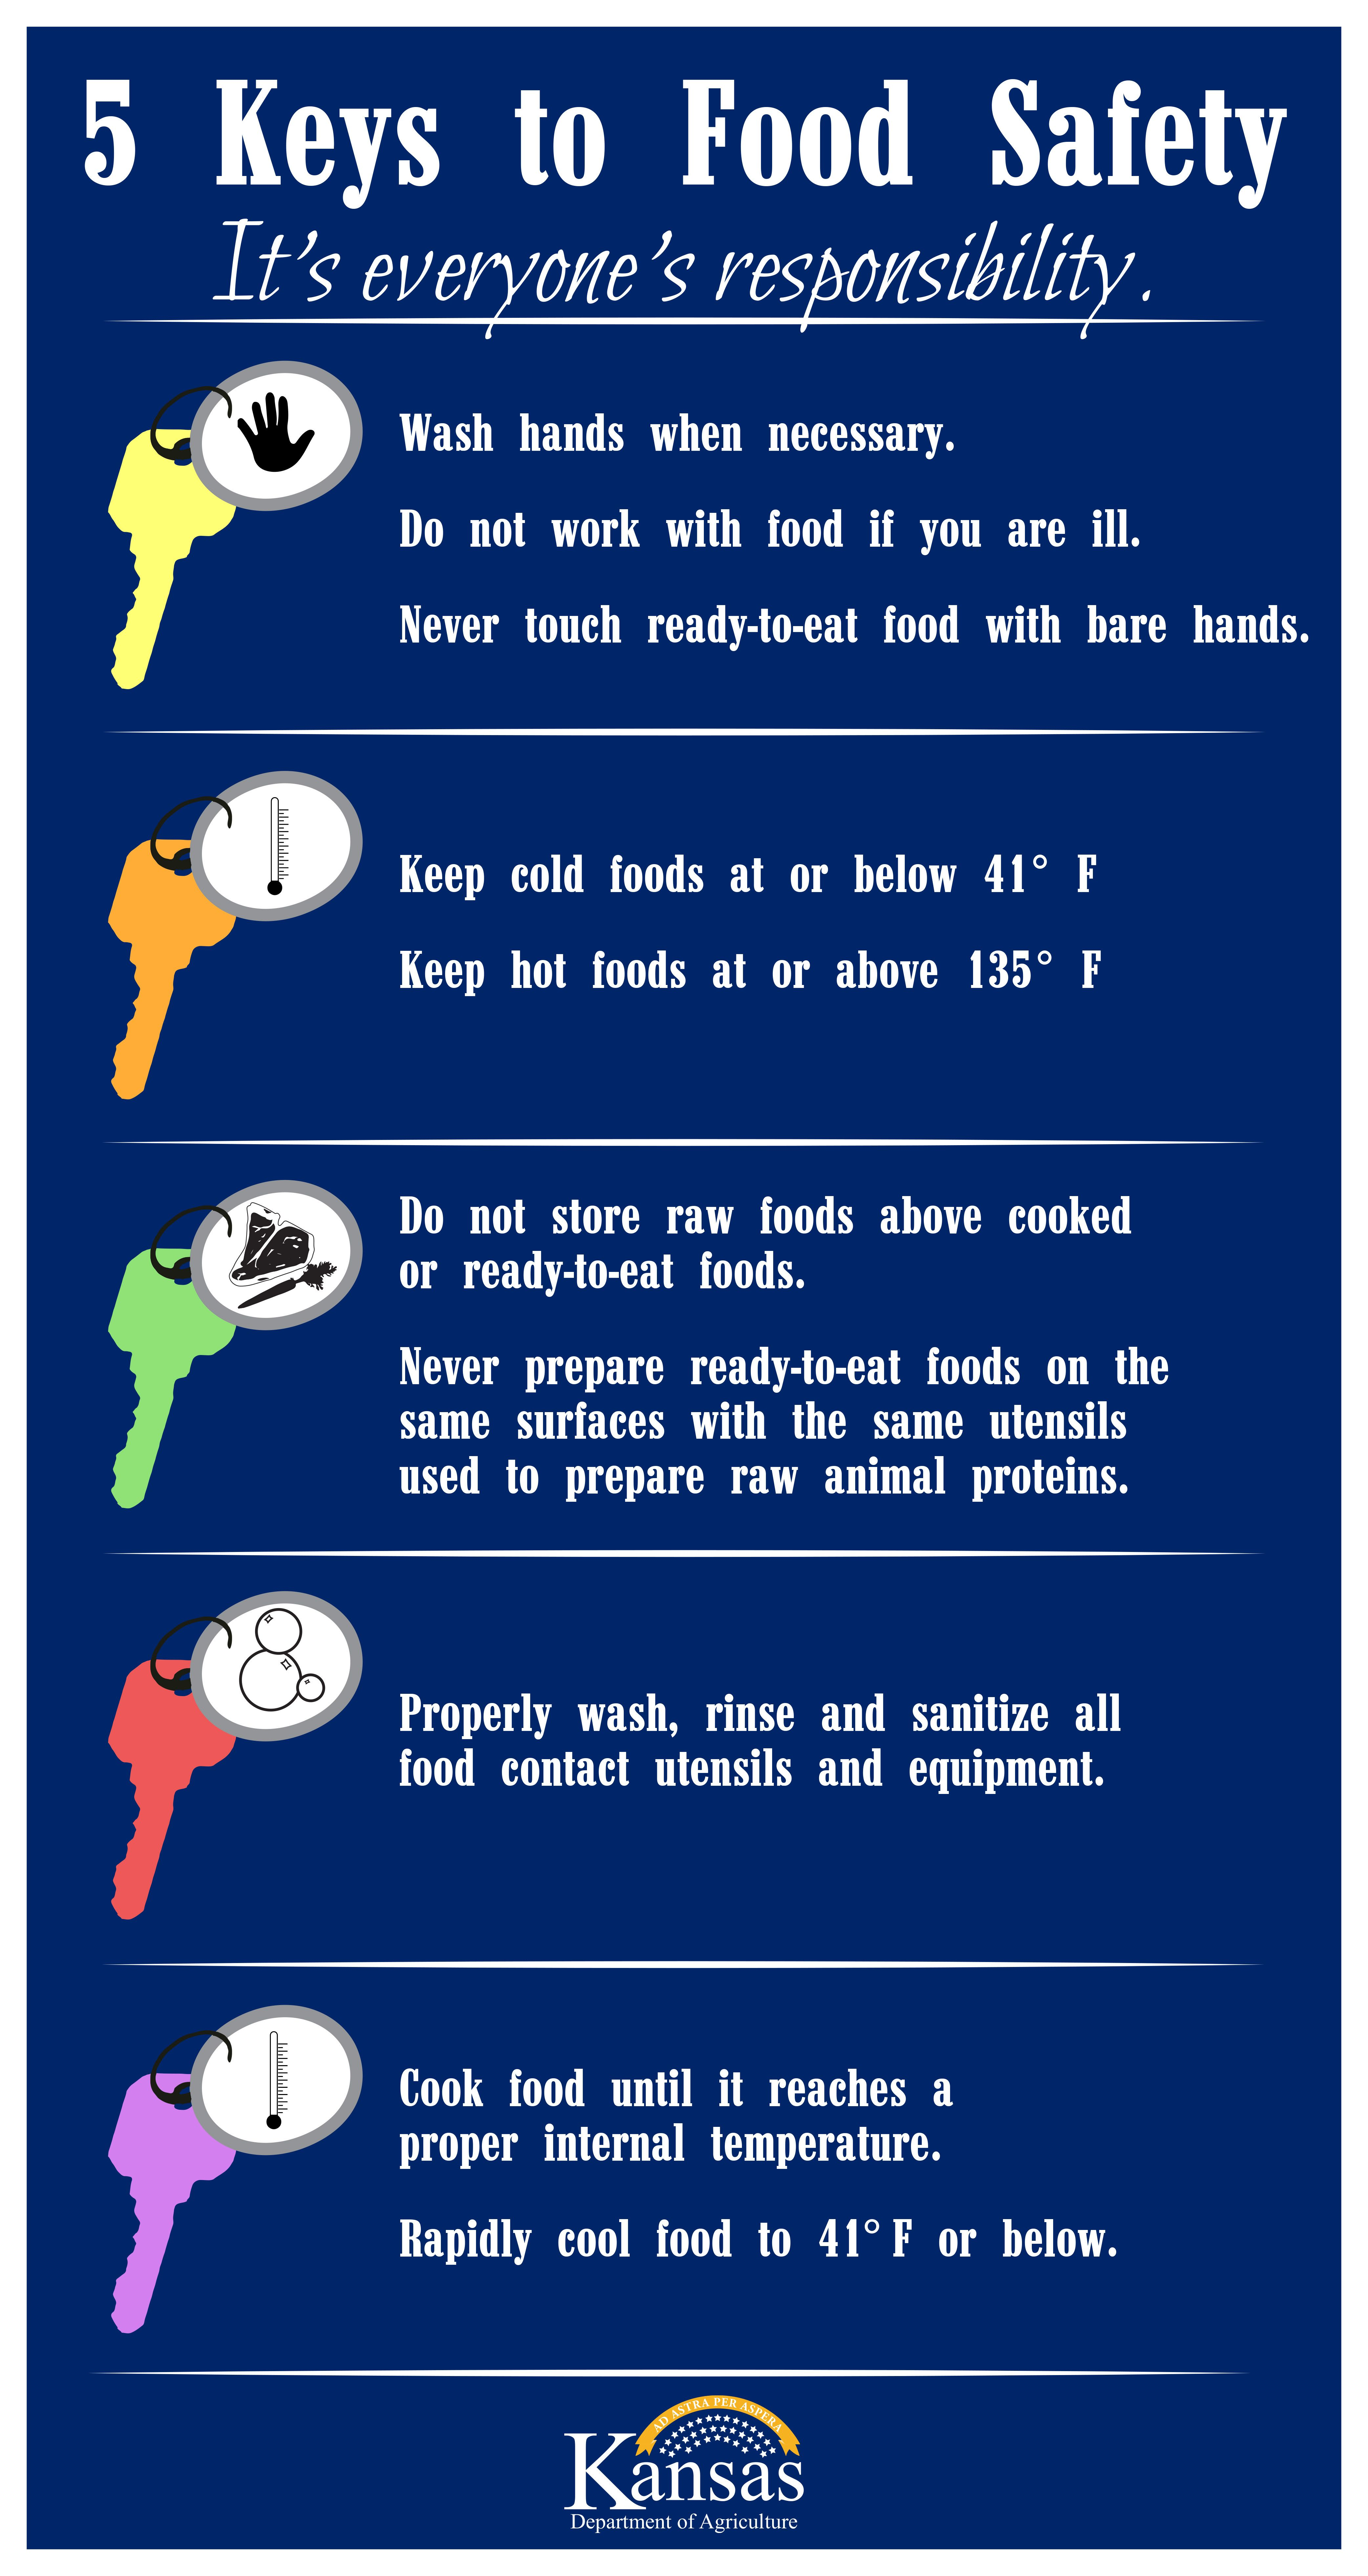 Food safety is everyones responsibility these 5 keys can